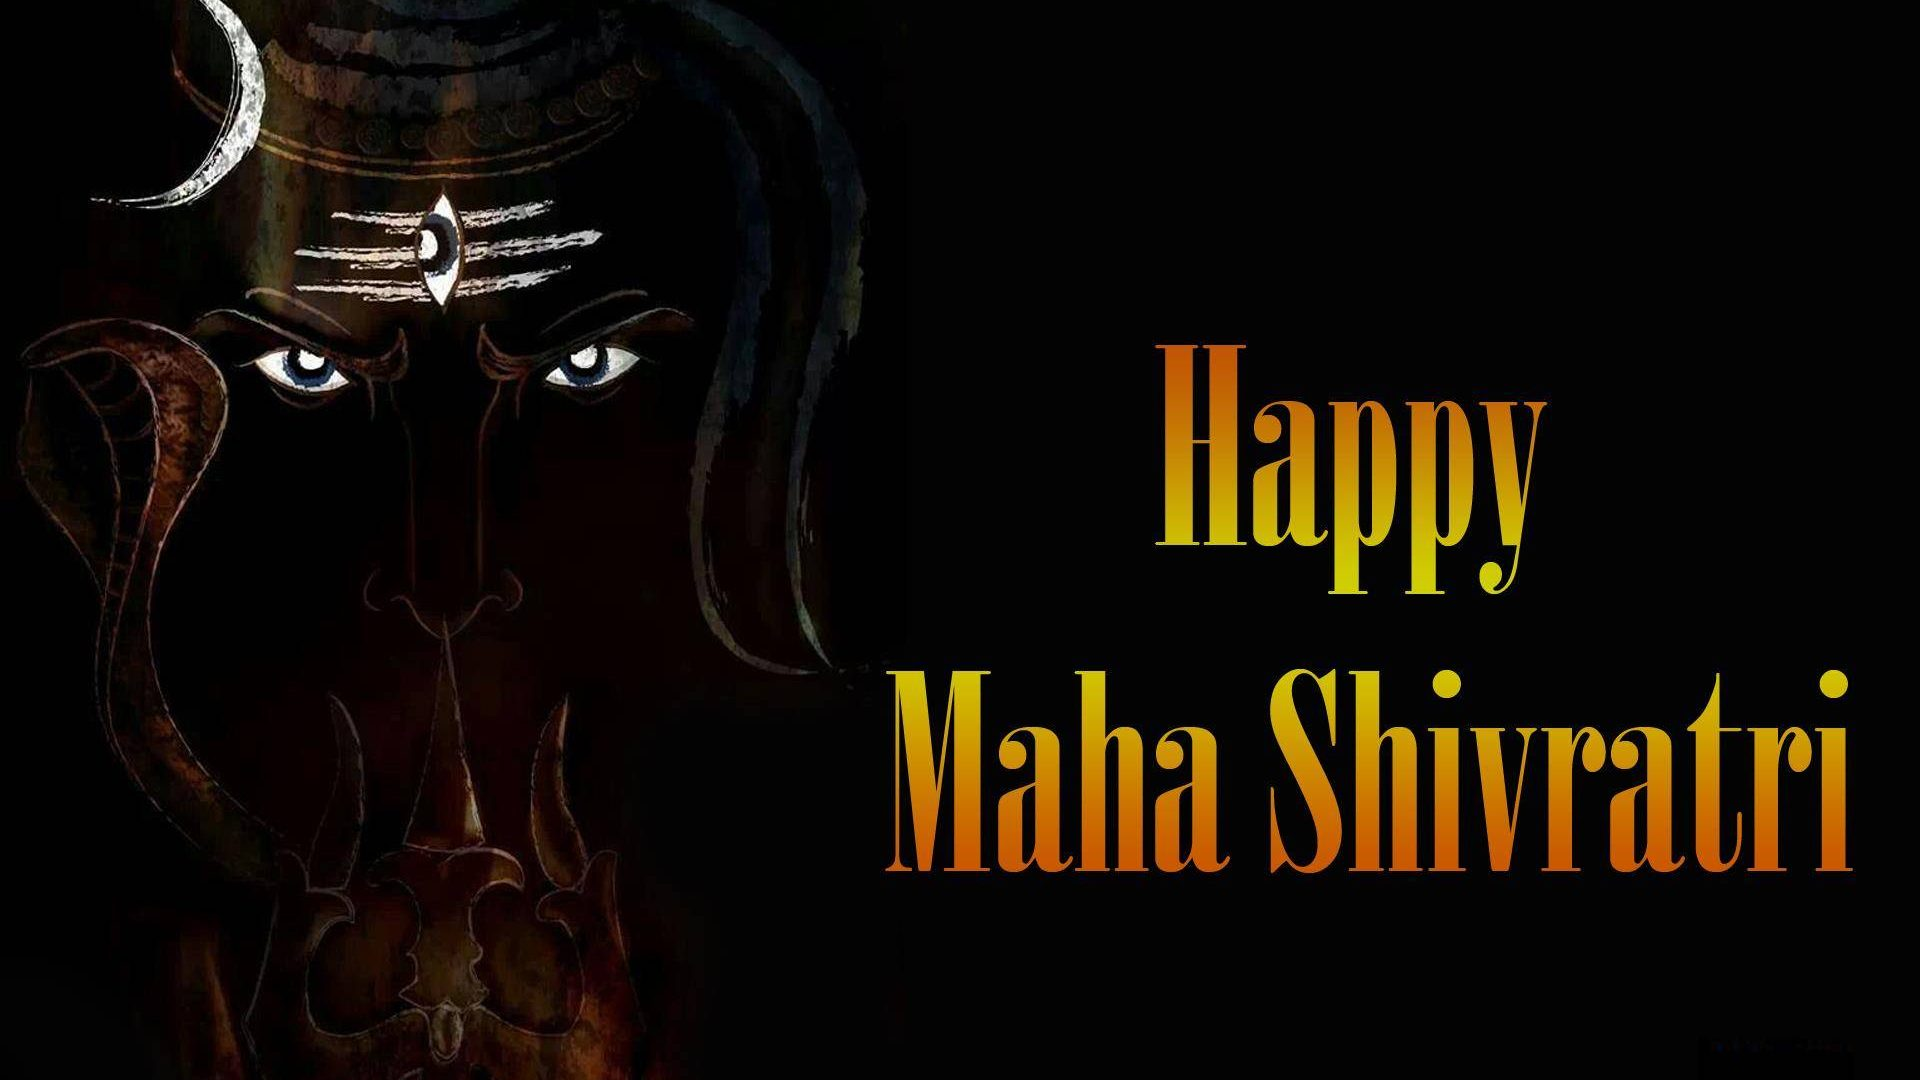 Shivratri Lord Shiva Wallpapers For Iphone